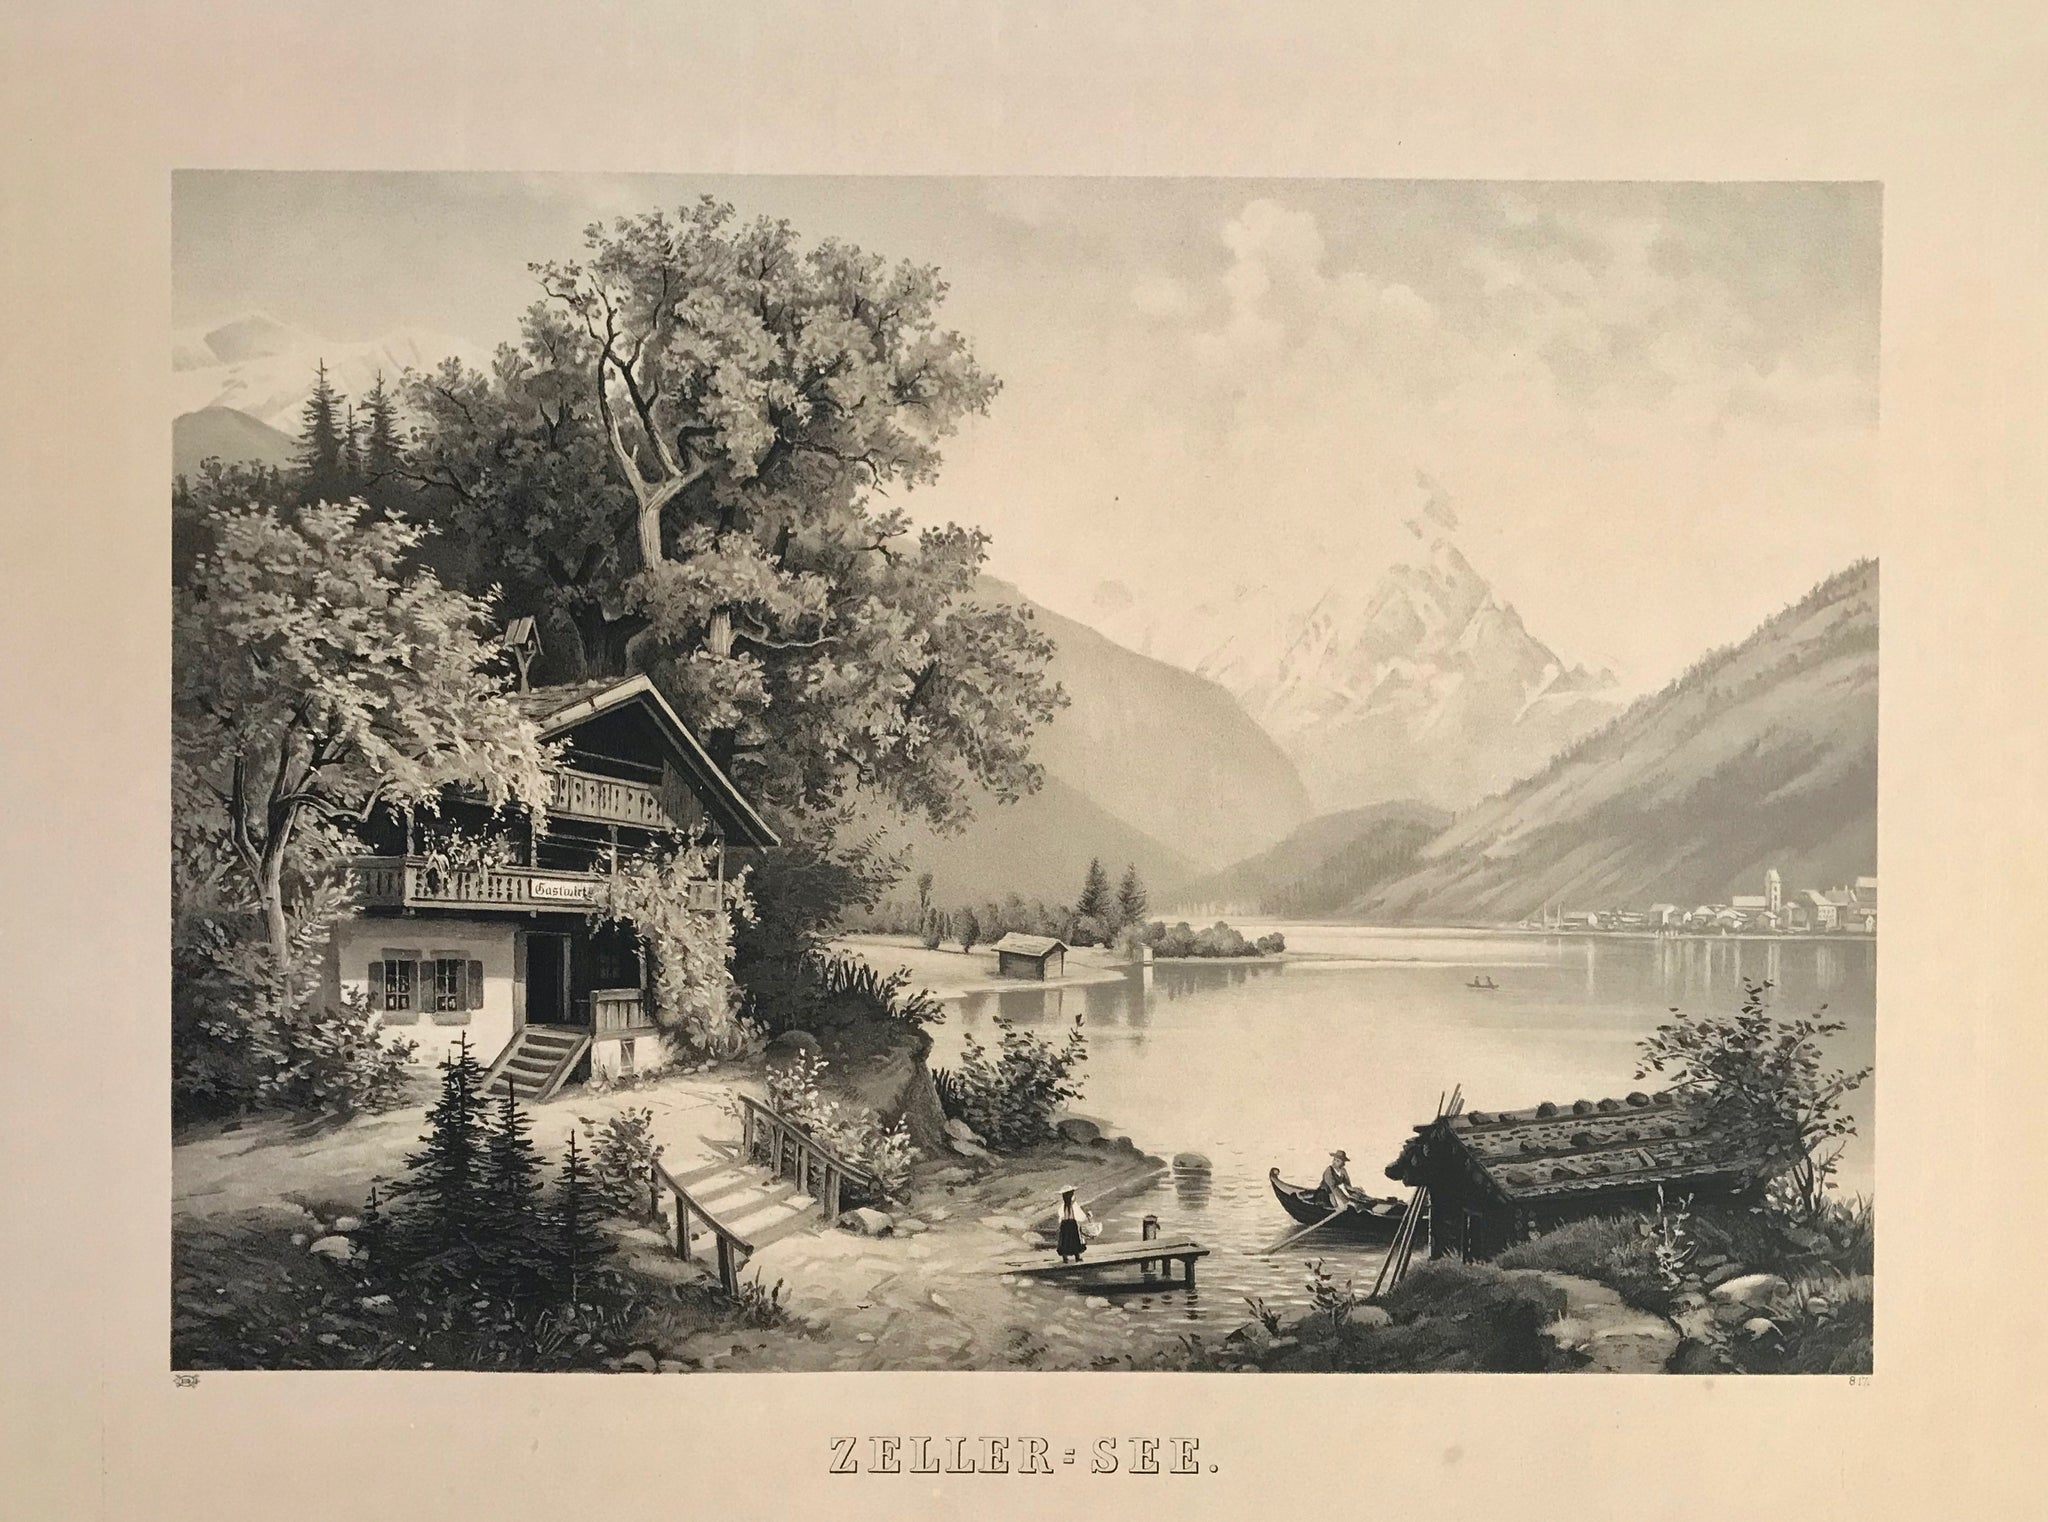 """Zeller-See""  Photogravure from a lithograph by an anonymous artist  Vienna, ca. 1880  Idyllic view of Zeller Lake towards the old part of Zell am See, before any big construction changed the landscape. (At that time Zell am See had under 2000 inhabitants verso almost 10000 in 2006). In the background we see snow-covered mountain Grossglockner."